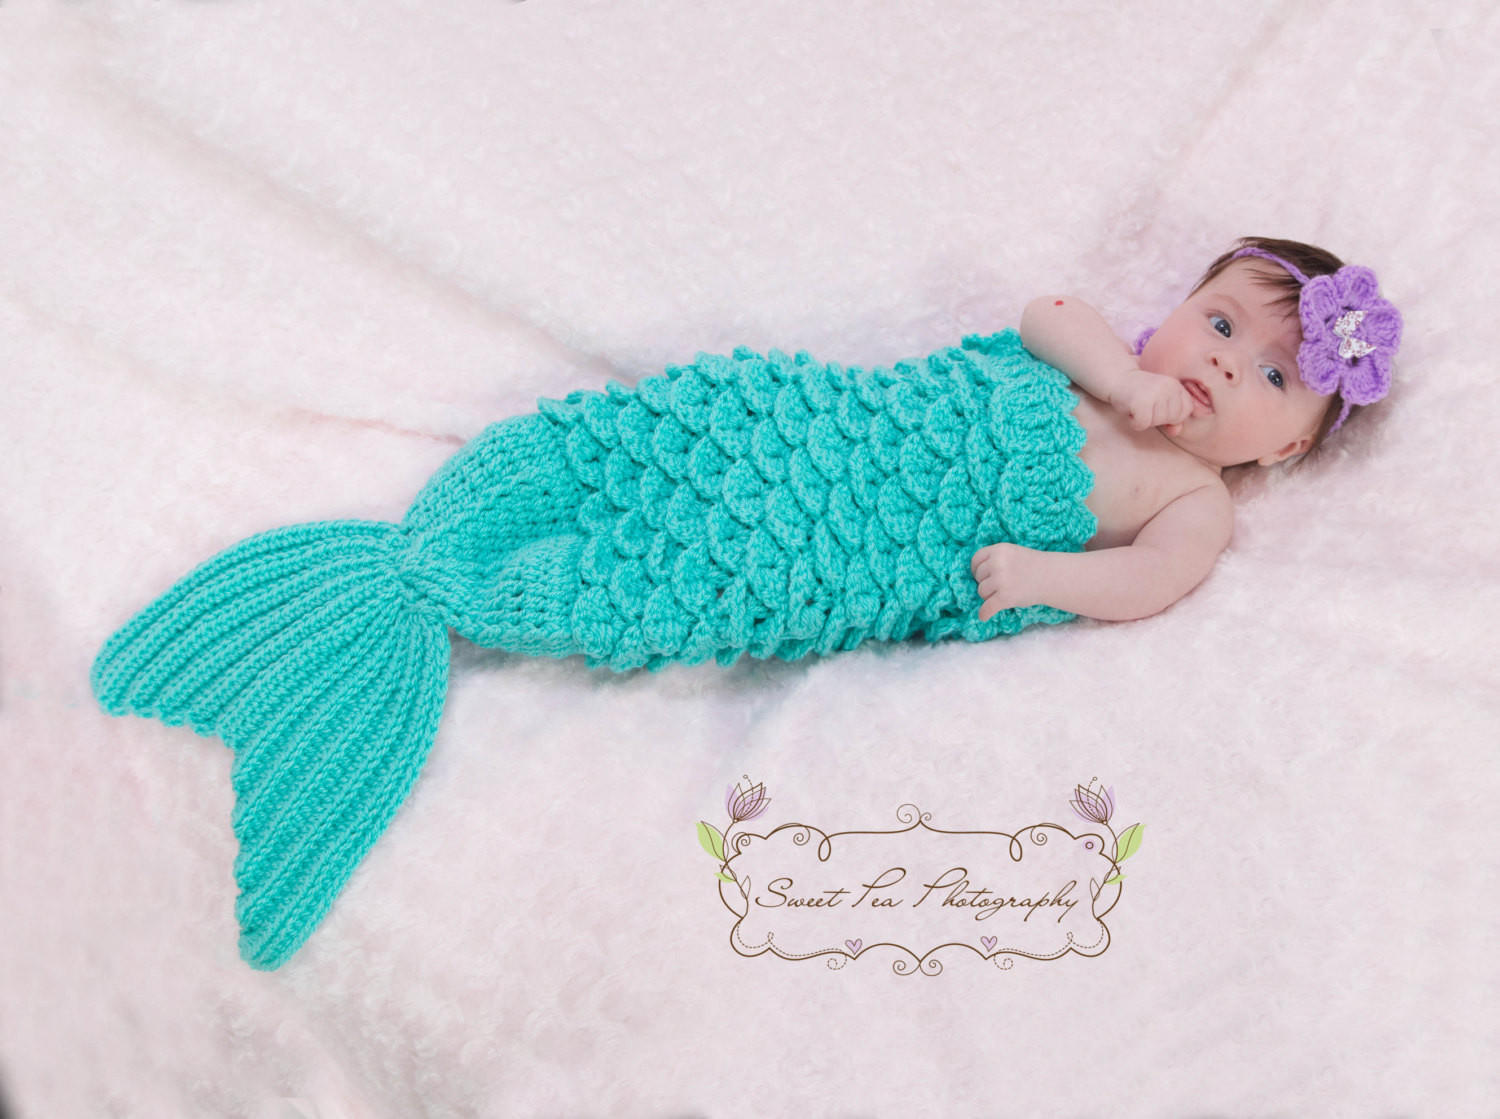 Baby Mermaid Tail Crochet Pattern Awesome Crochet Mermaid Tail & Headband Prop Instant Download Pdf From Of New 45 Photos Baby Mermaid Tail Crochet Pattern